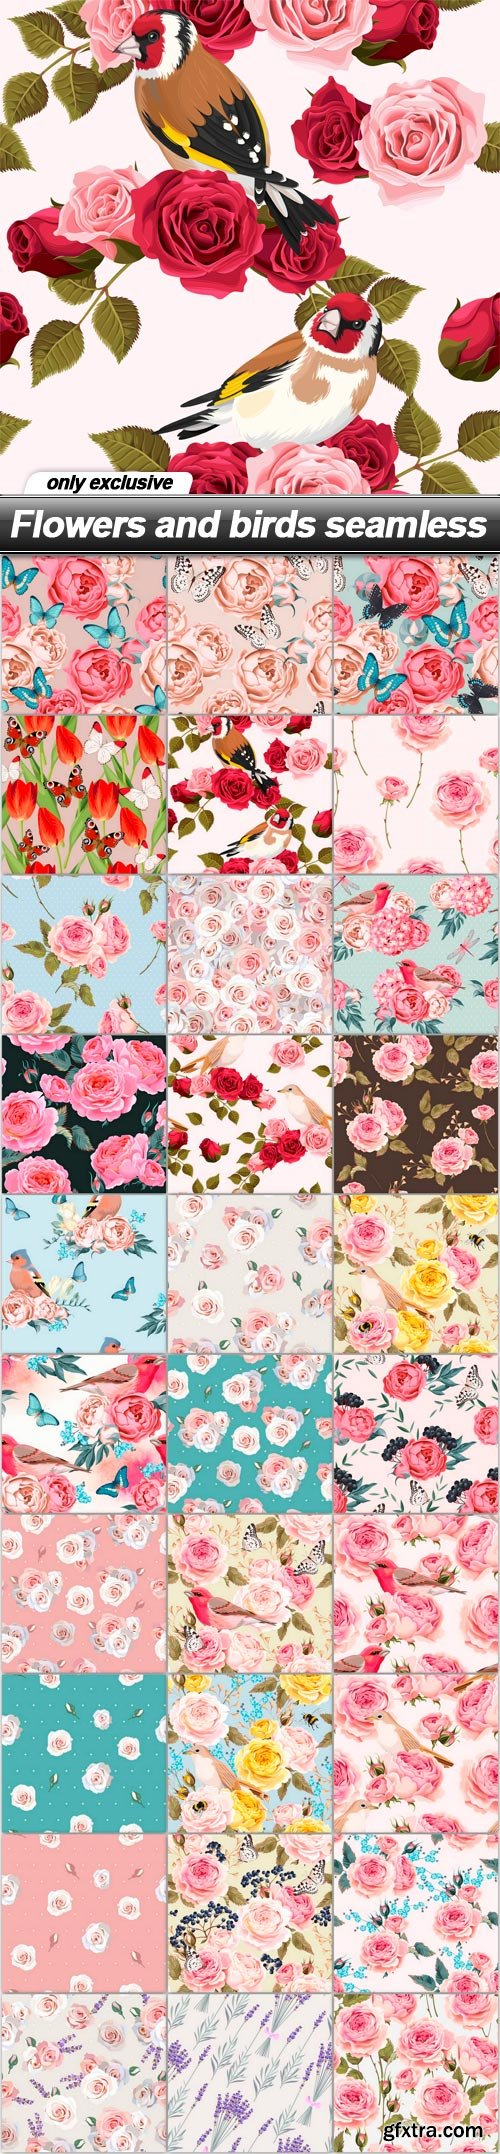 Flowers and birds seamless - 30 EPS